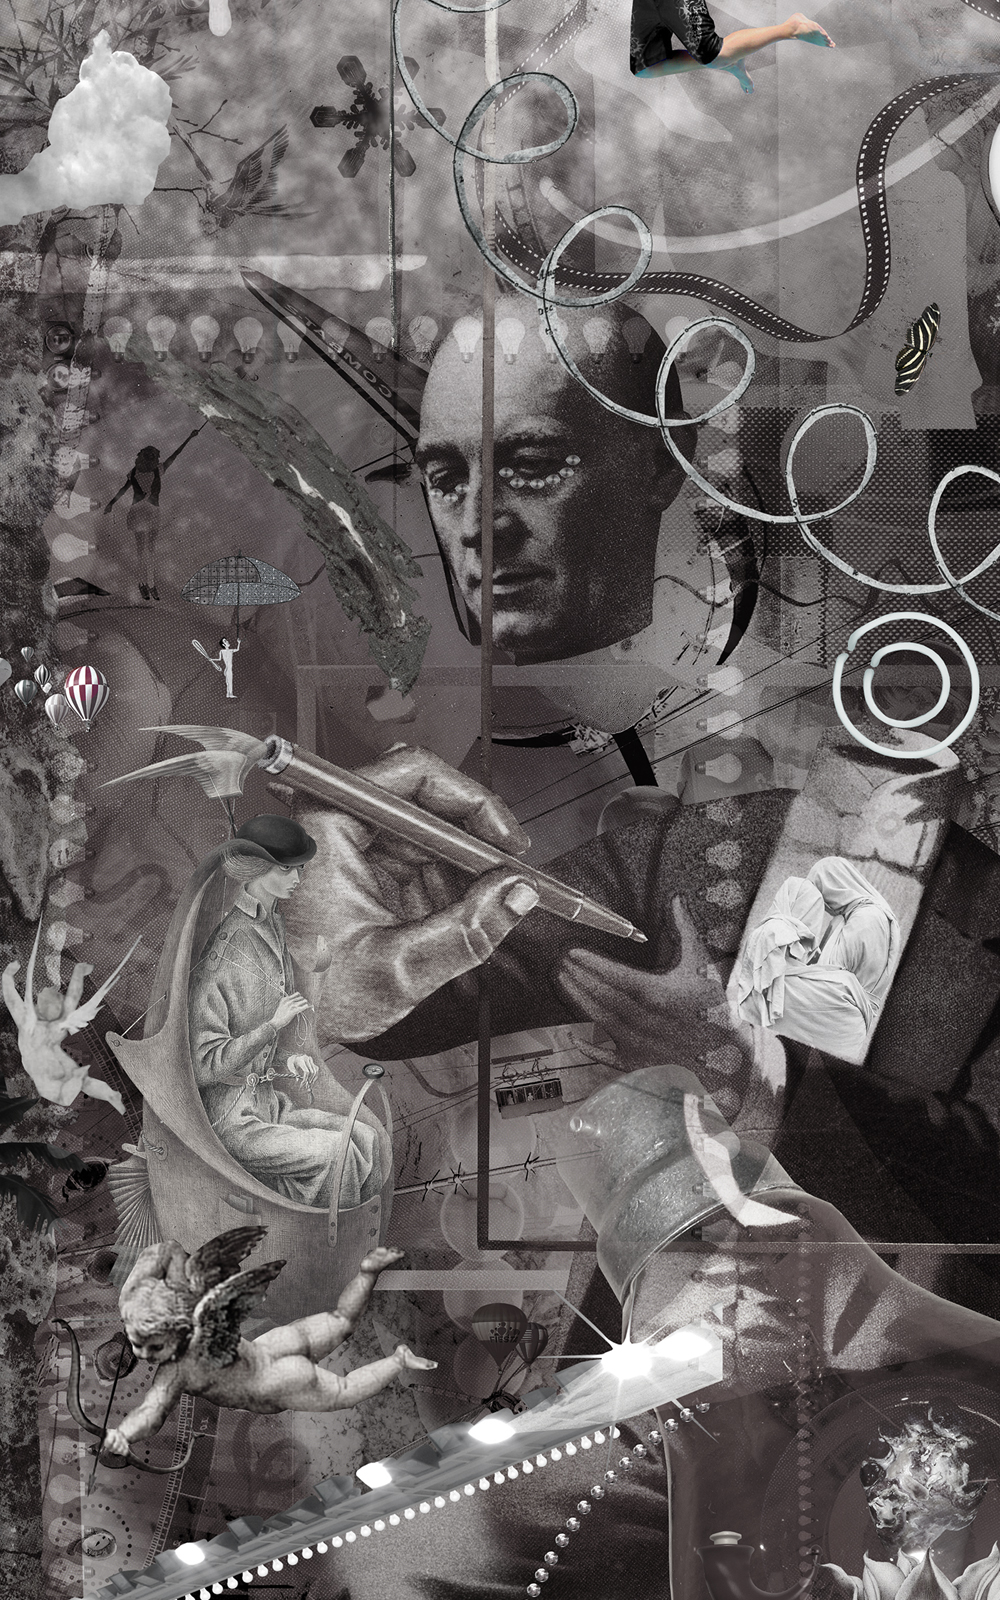 Case Simmons, Simmons & Burke, If Not Summer #2, Kohn Gallery, Hieronymus Bosch, Lightjet Print, Digital Collage, Digital Art, Photoshop Collage, Contemporary Collage, Case Simmons Art, Case Simmons Artist, Collage Fine Art, Hyper Collage, Future Collage, Black and White Collage, Digital Landscape